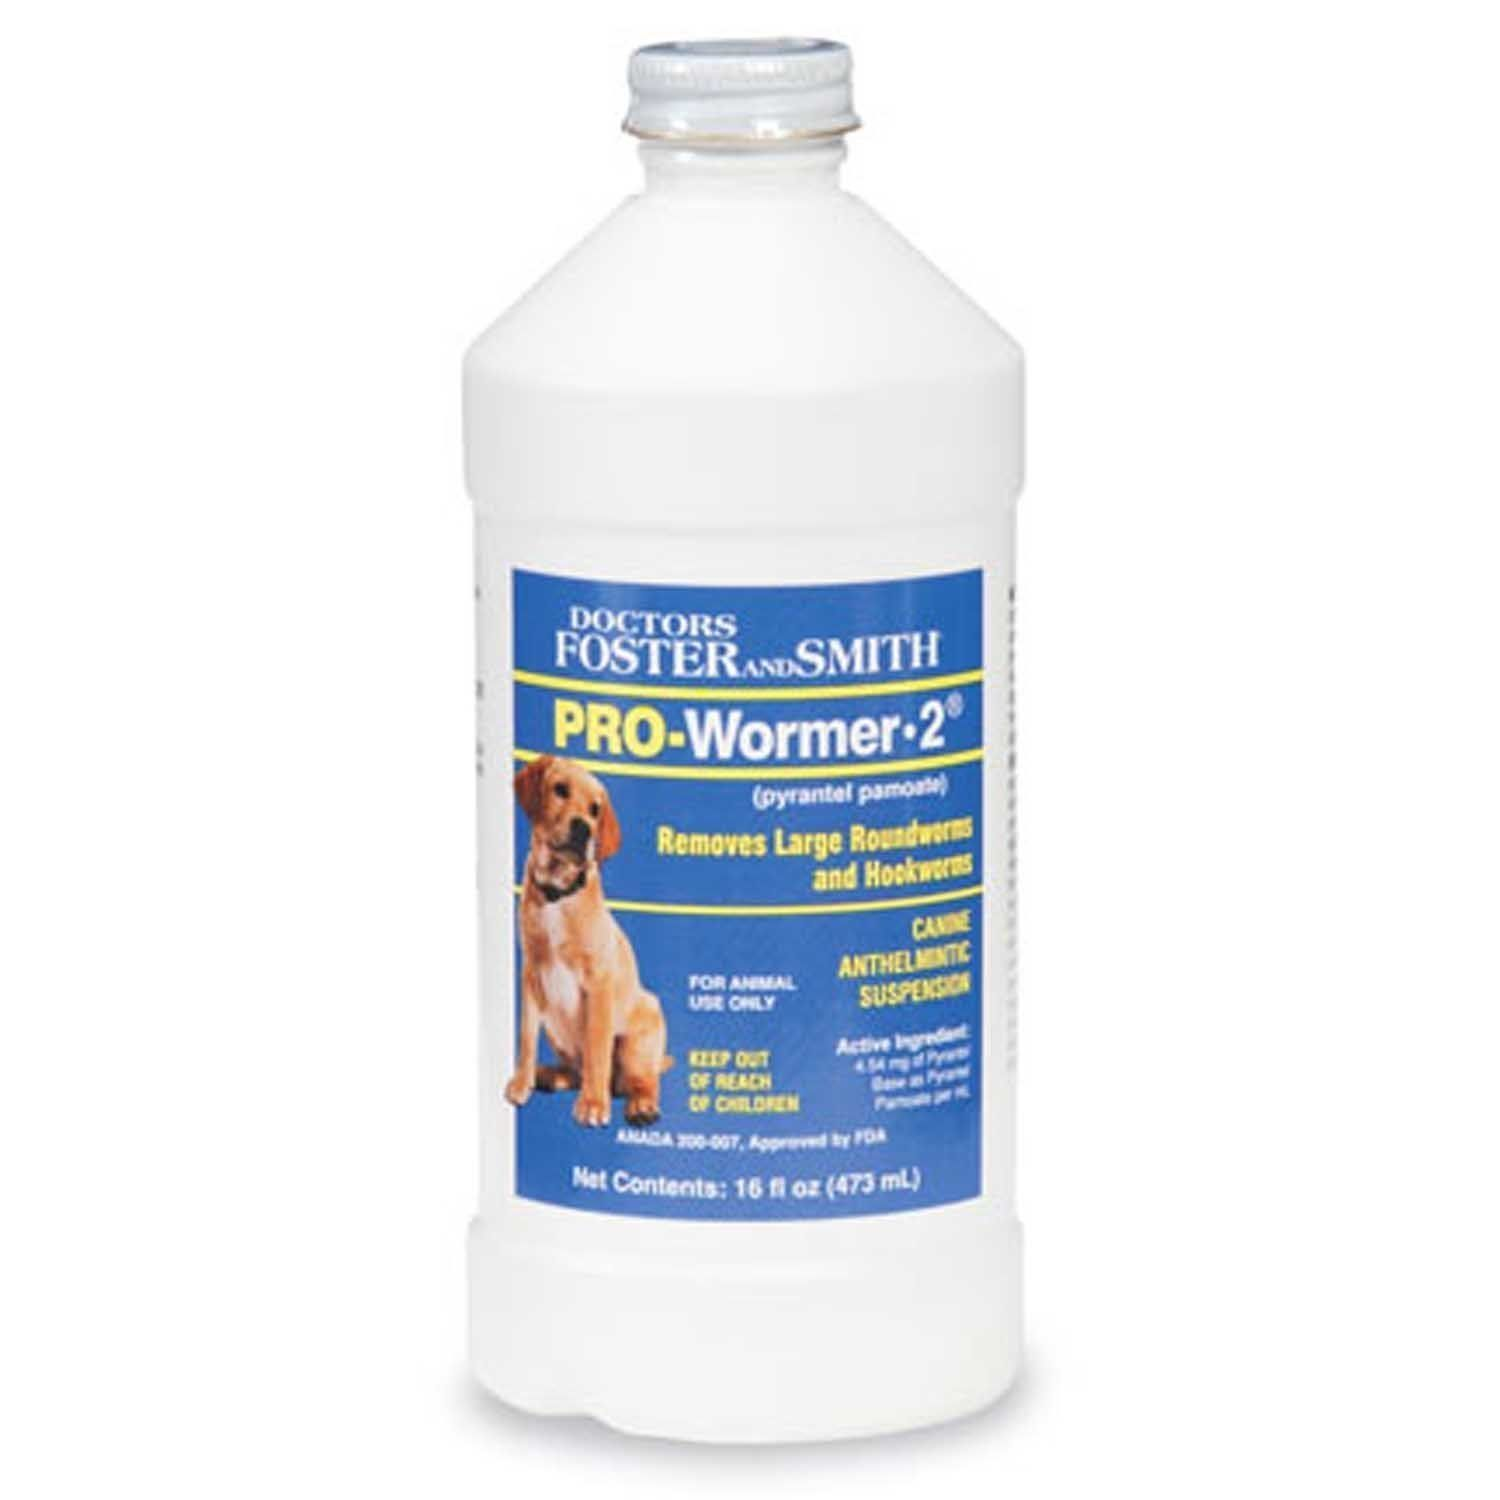 Doctors Foster Smith Pro Wormer Liquid Dog Wormer 2x 16oz 1 Pint By Same Active Ingredient As Nemex 2 Pyrante Deworming Dogs Foster And Smith Dr Foster